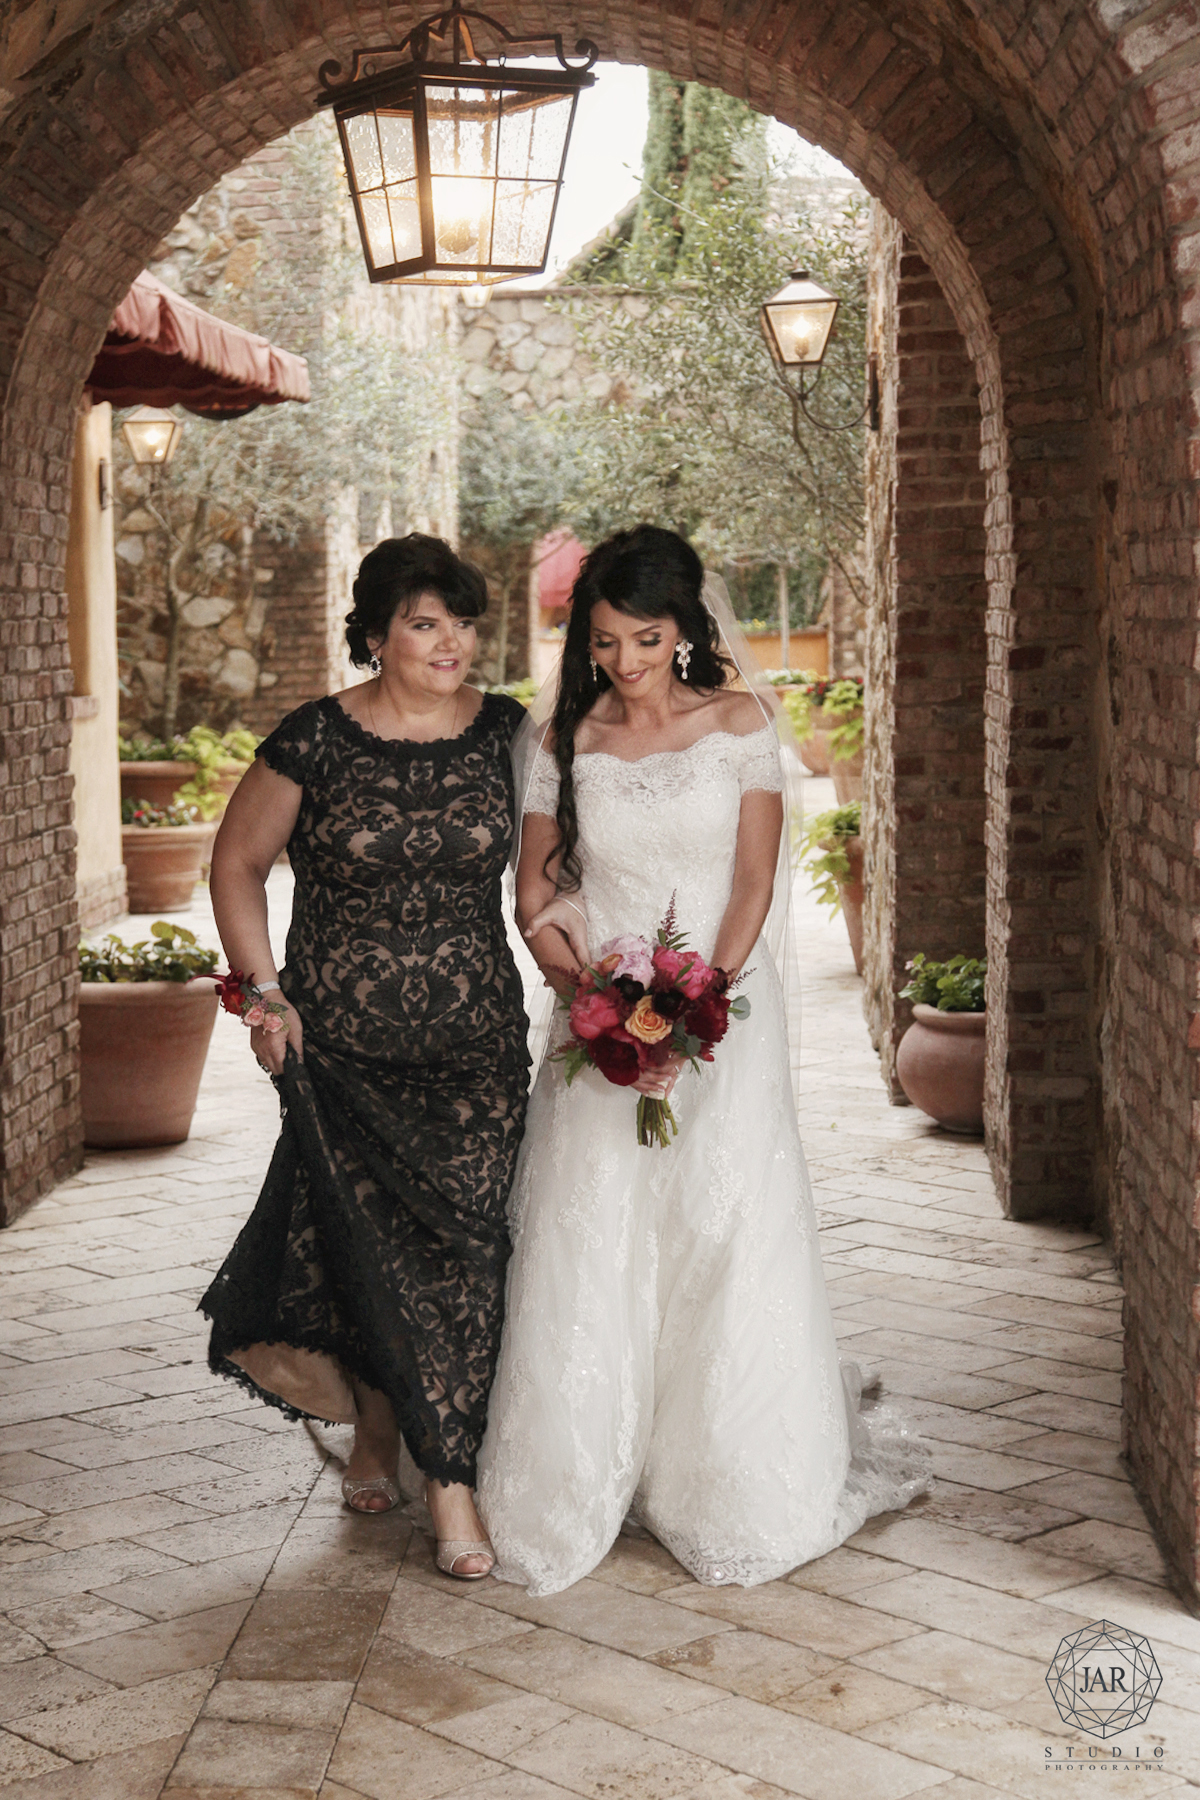 15-bride-walking-down-aisle-with-mother-moment-best-orlando-photographer.jpg